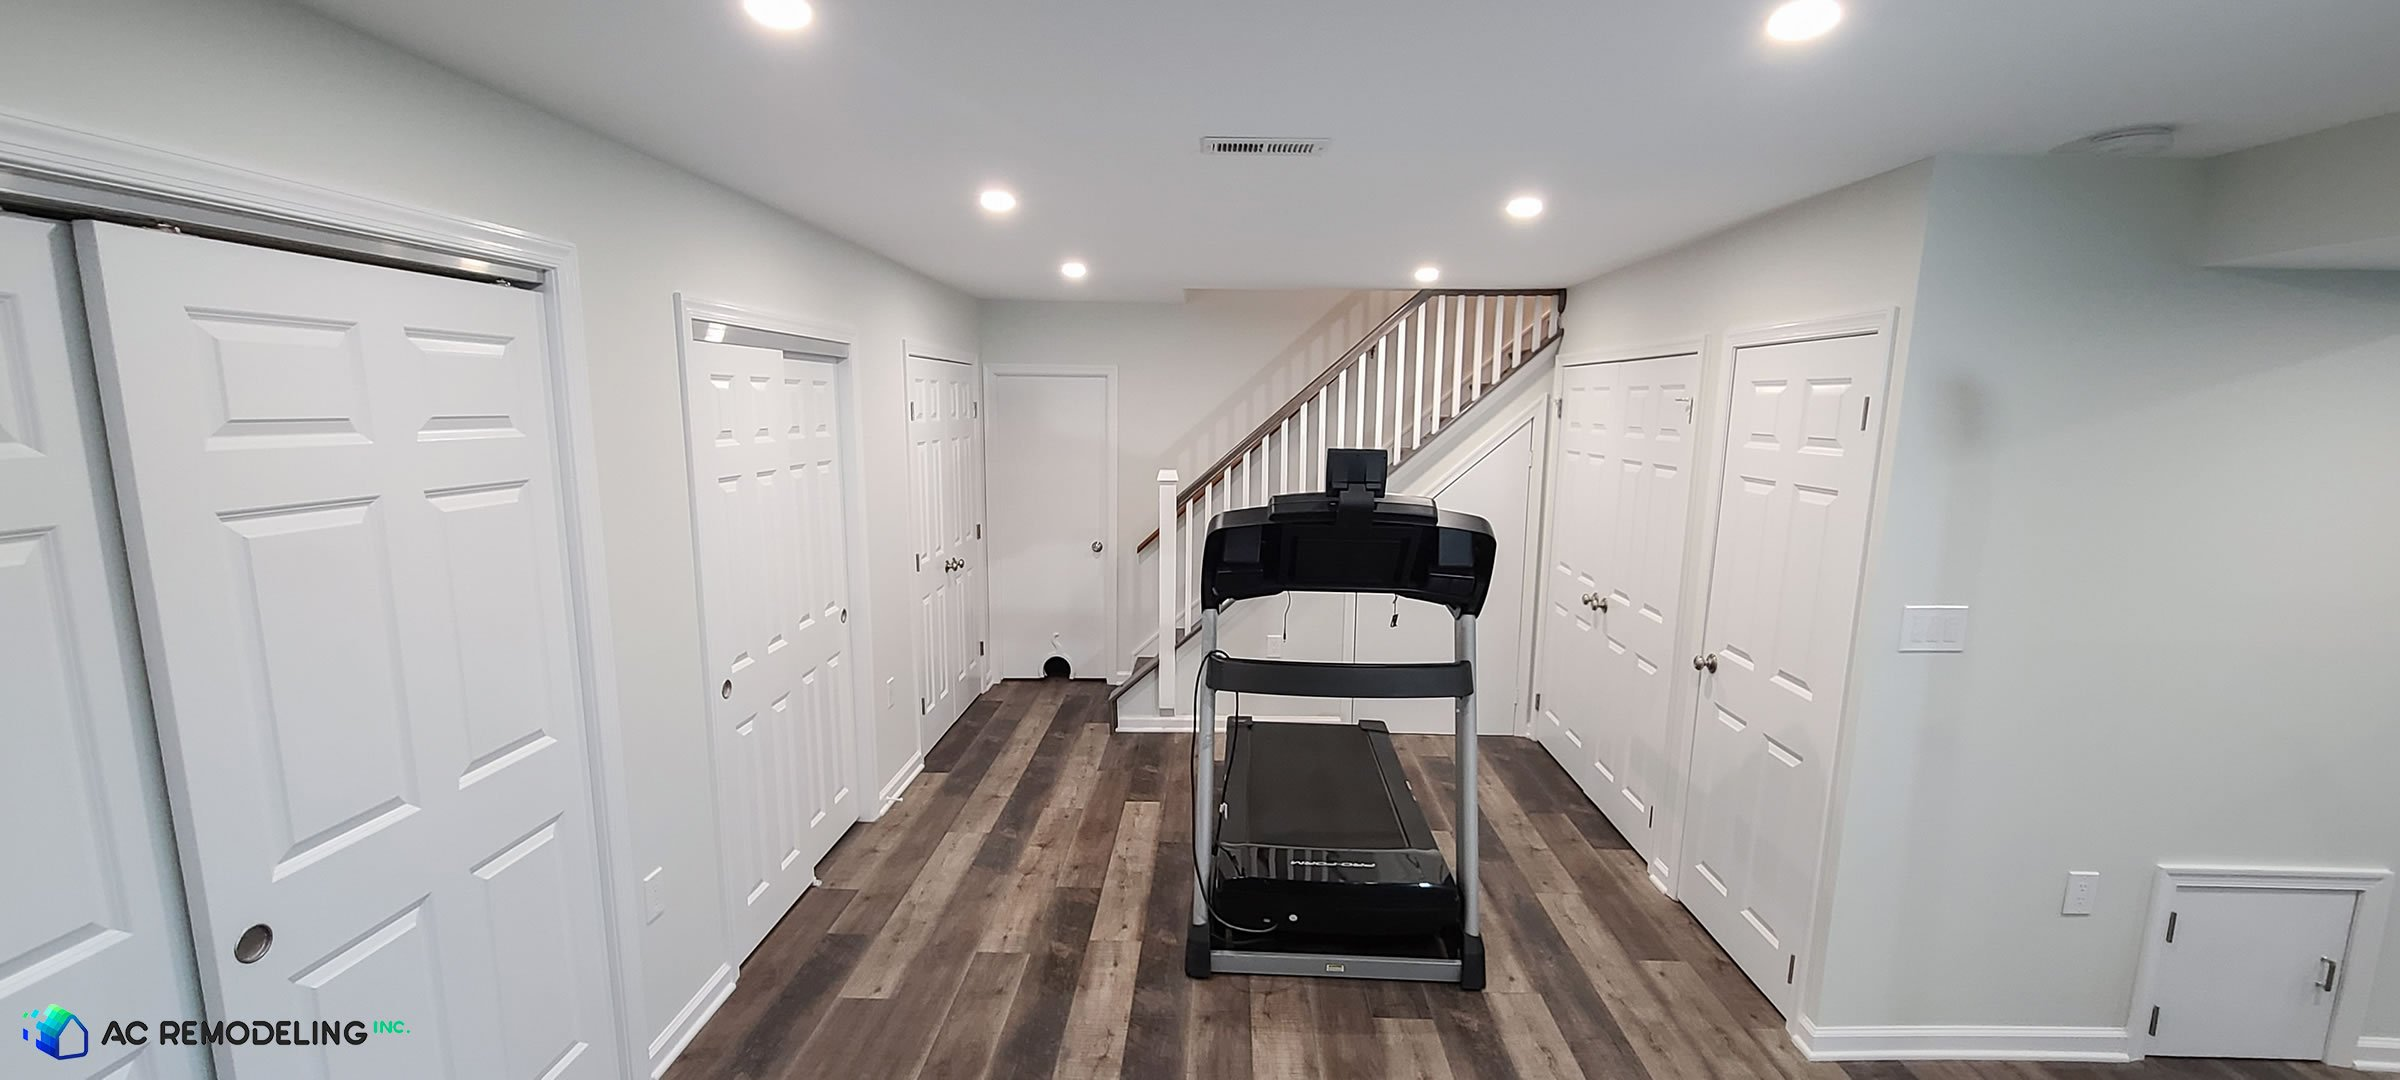 completed basement remodeling project